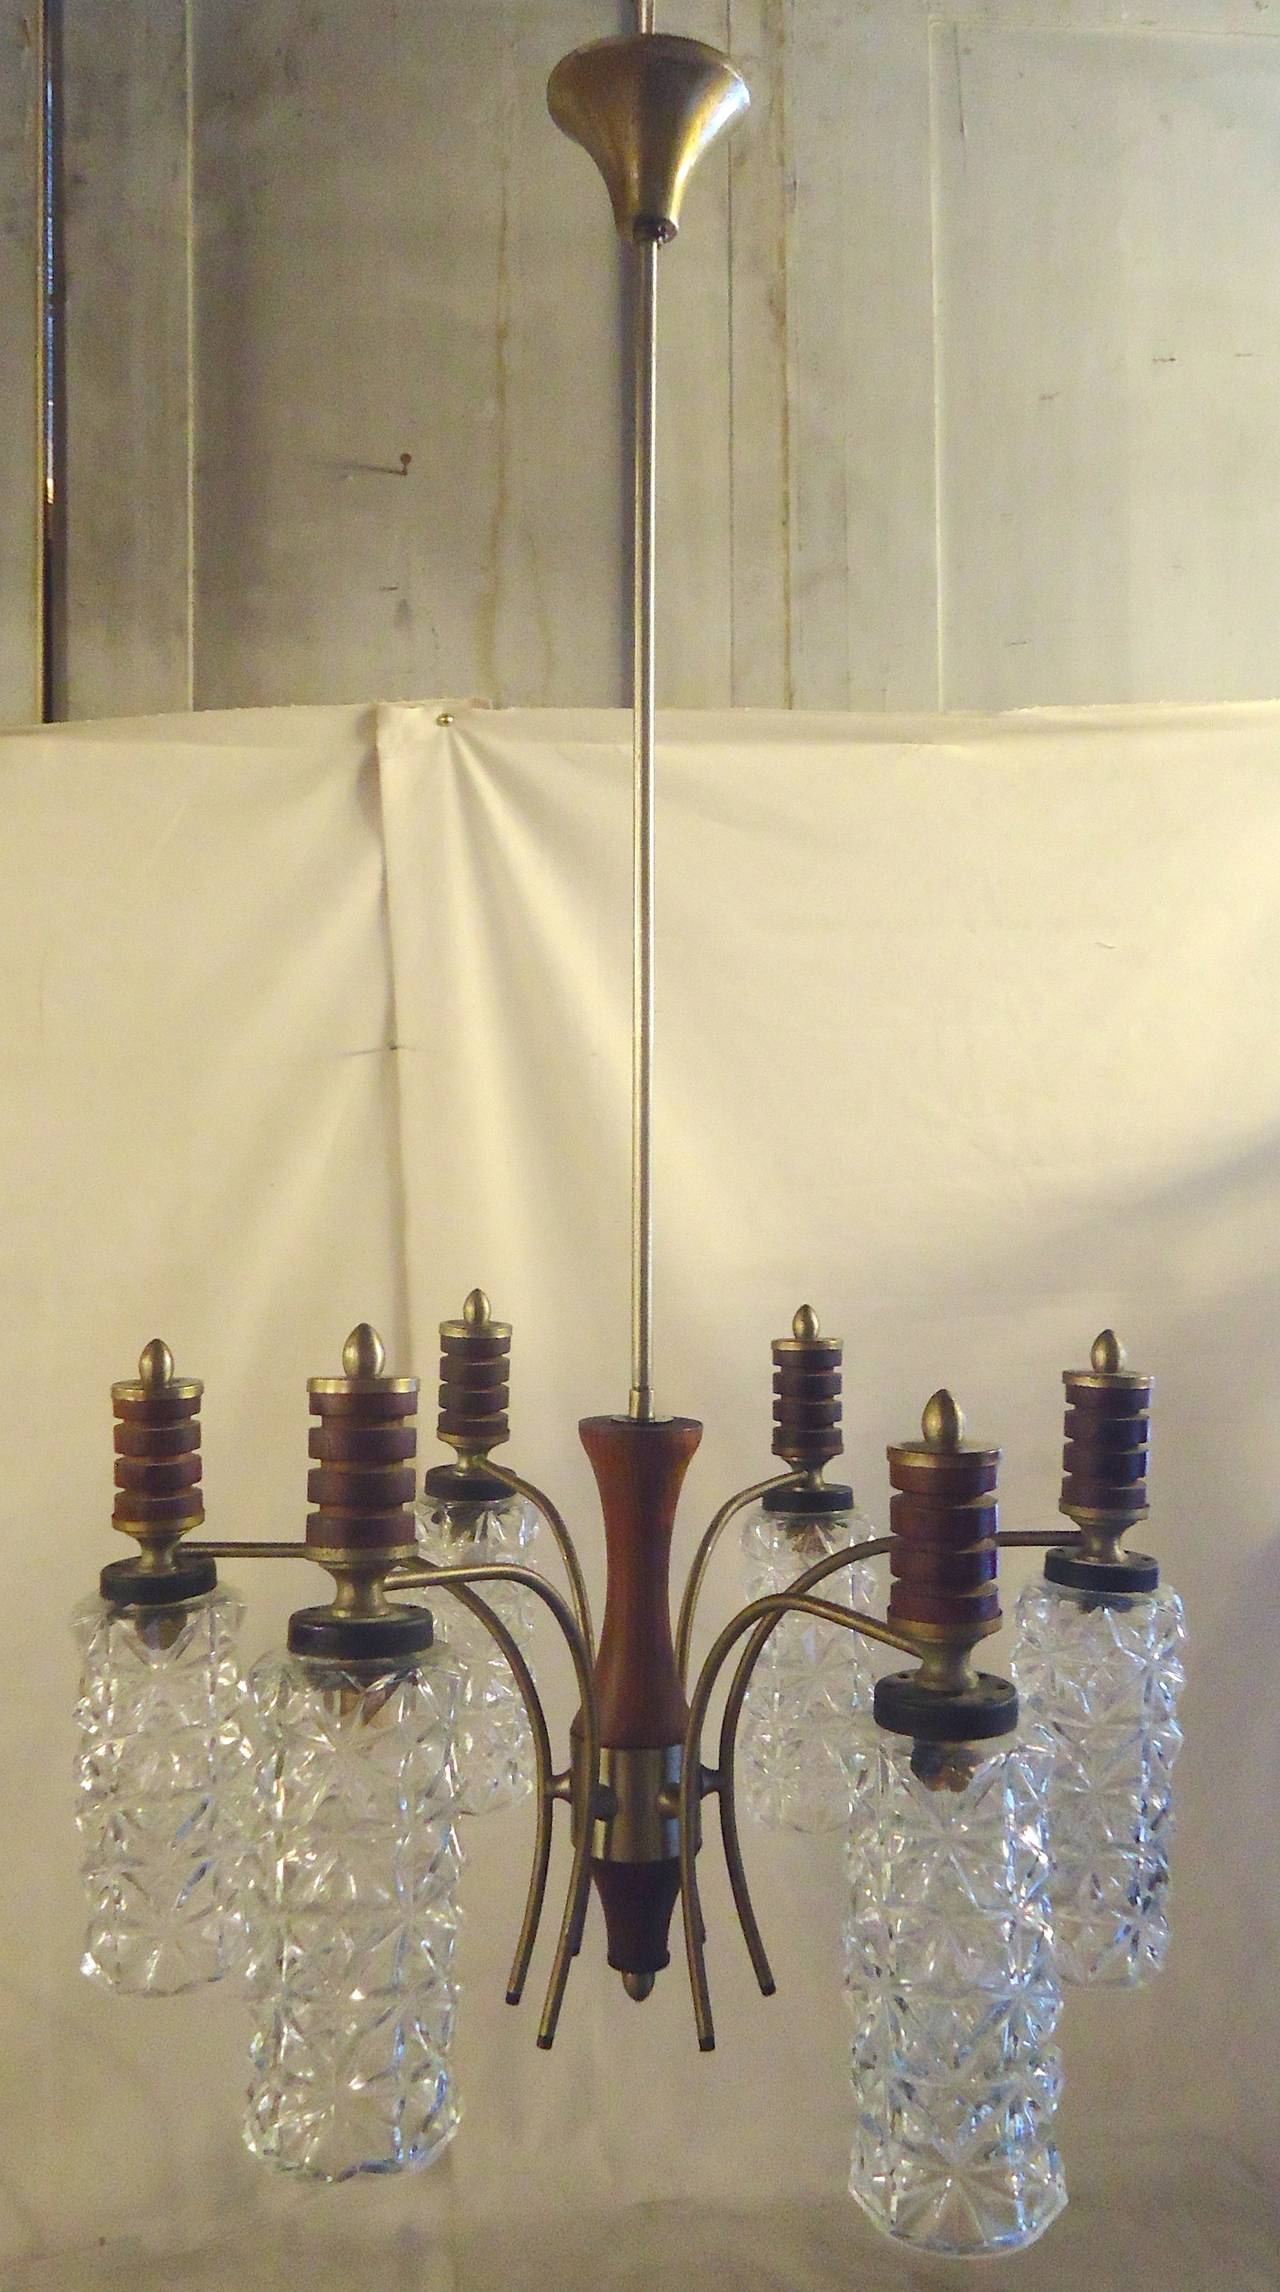 Mid-century modern six arm chandelier with great cut glass shades. Brass arms and wood accents with a long stem to the ceiling.  (Please confirm item location - NY or NJ - with dealer)